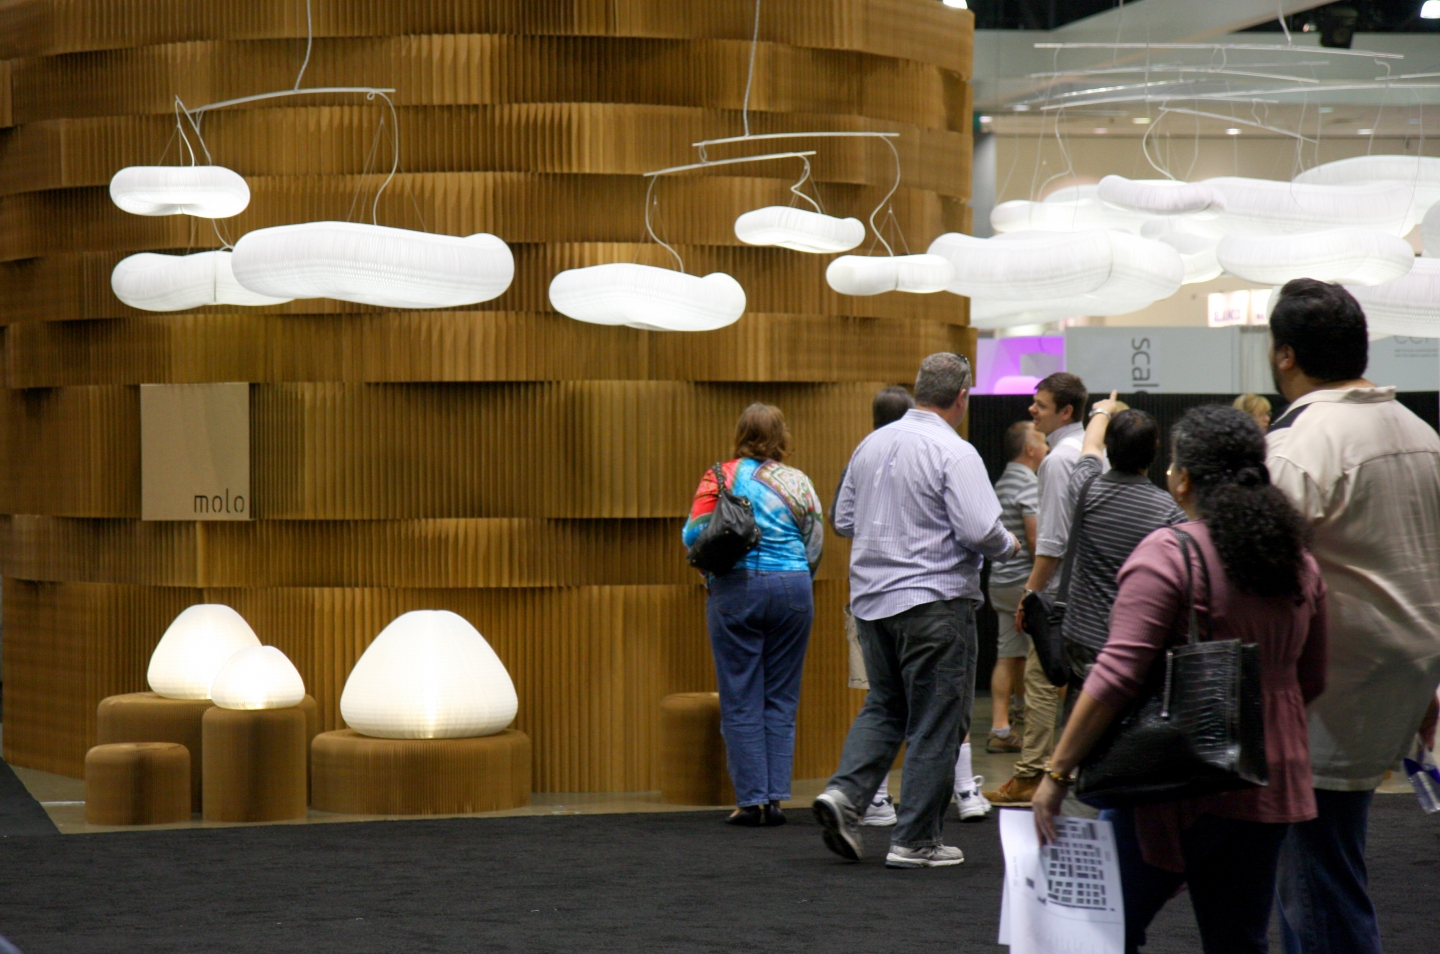 Paper softblock / room divider walls / paper lighting - a crowd visits molo's installation of paper softblocks and softlight at Dwell on Design.